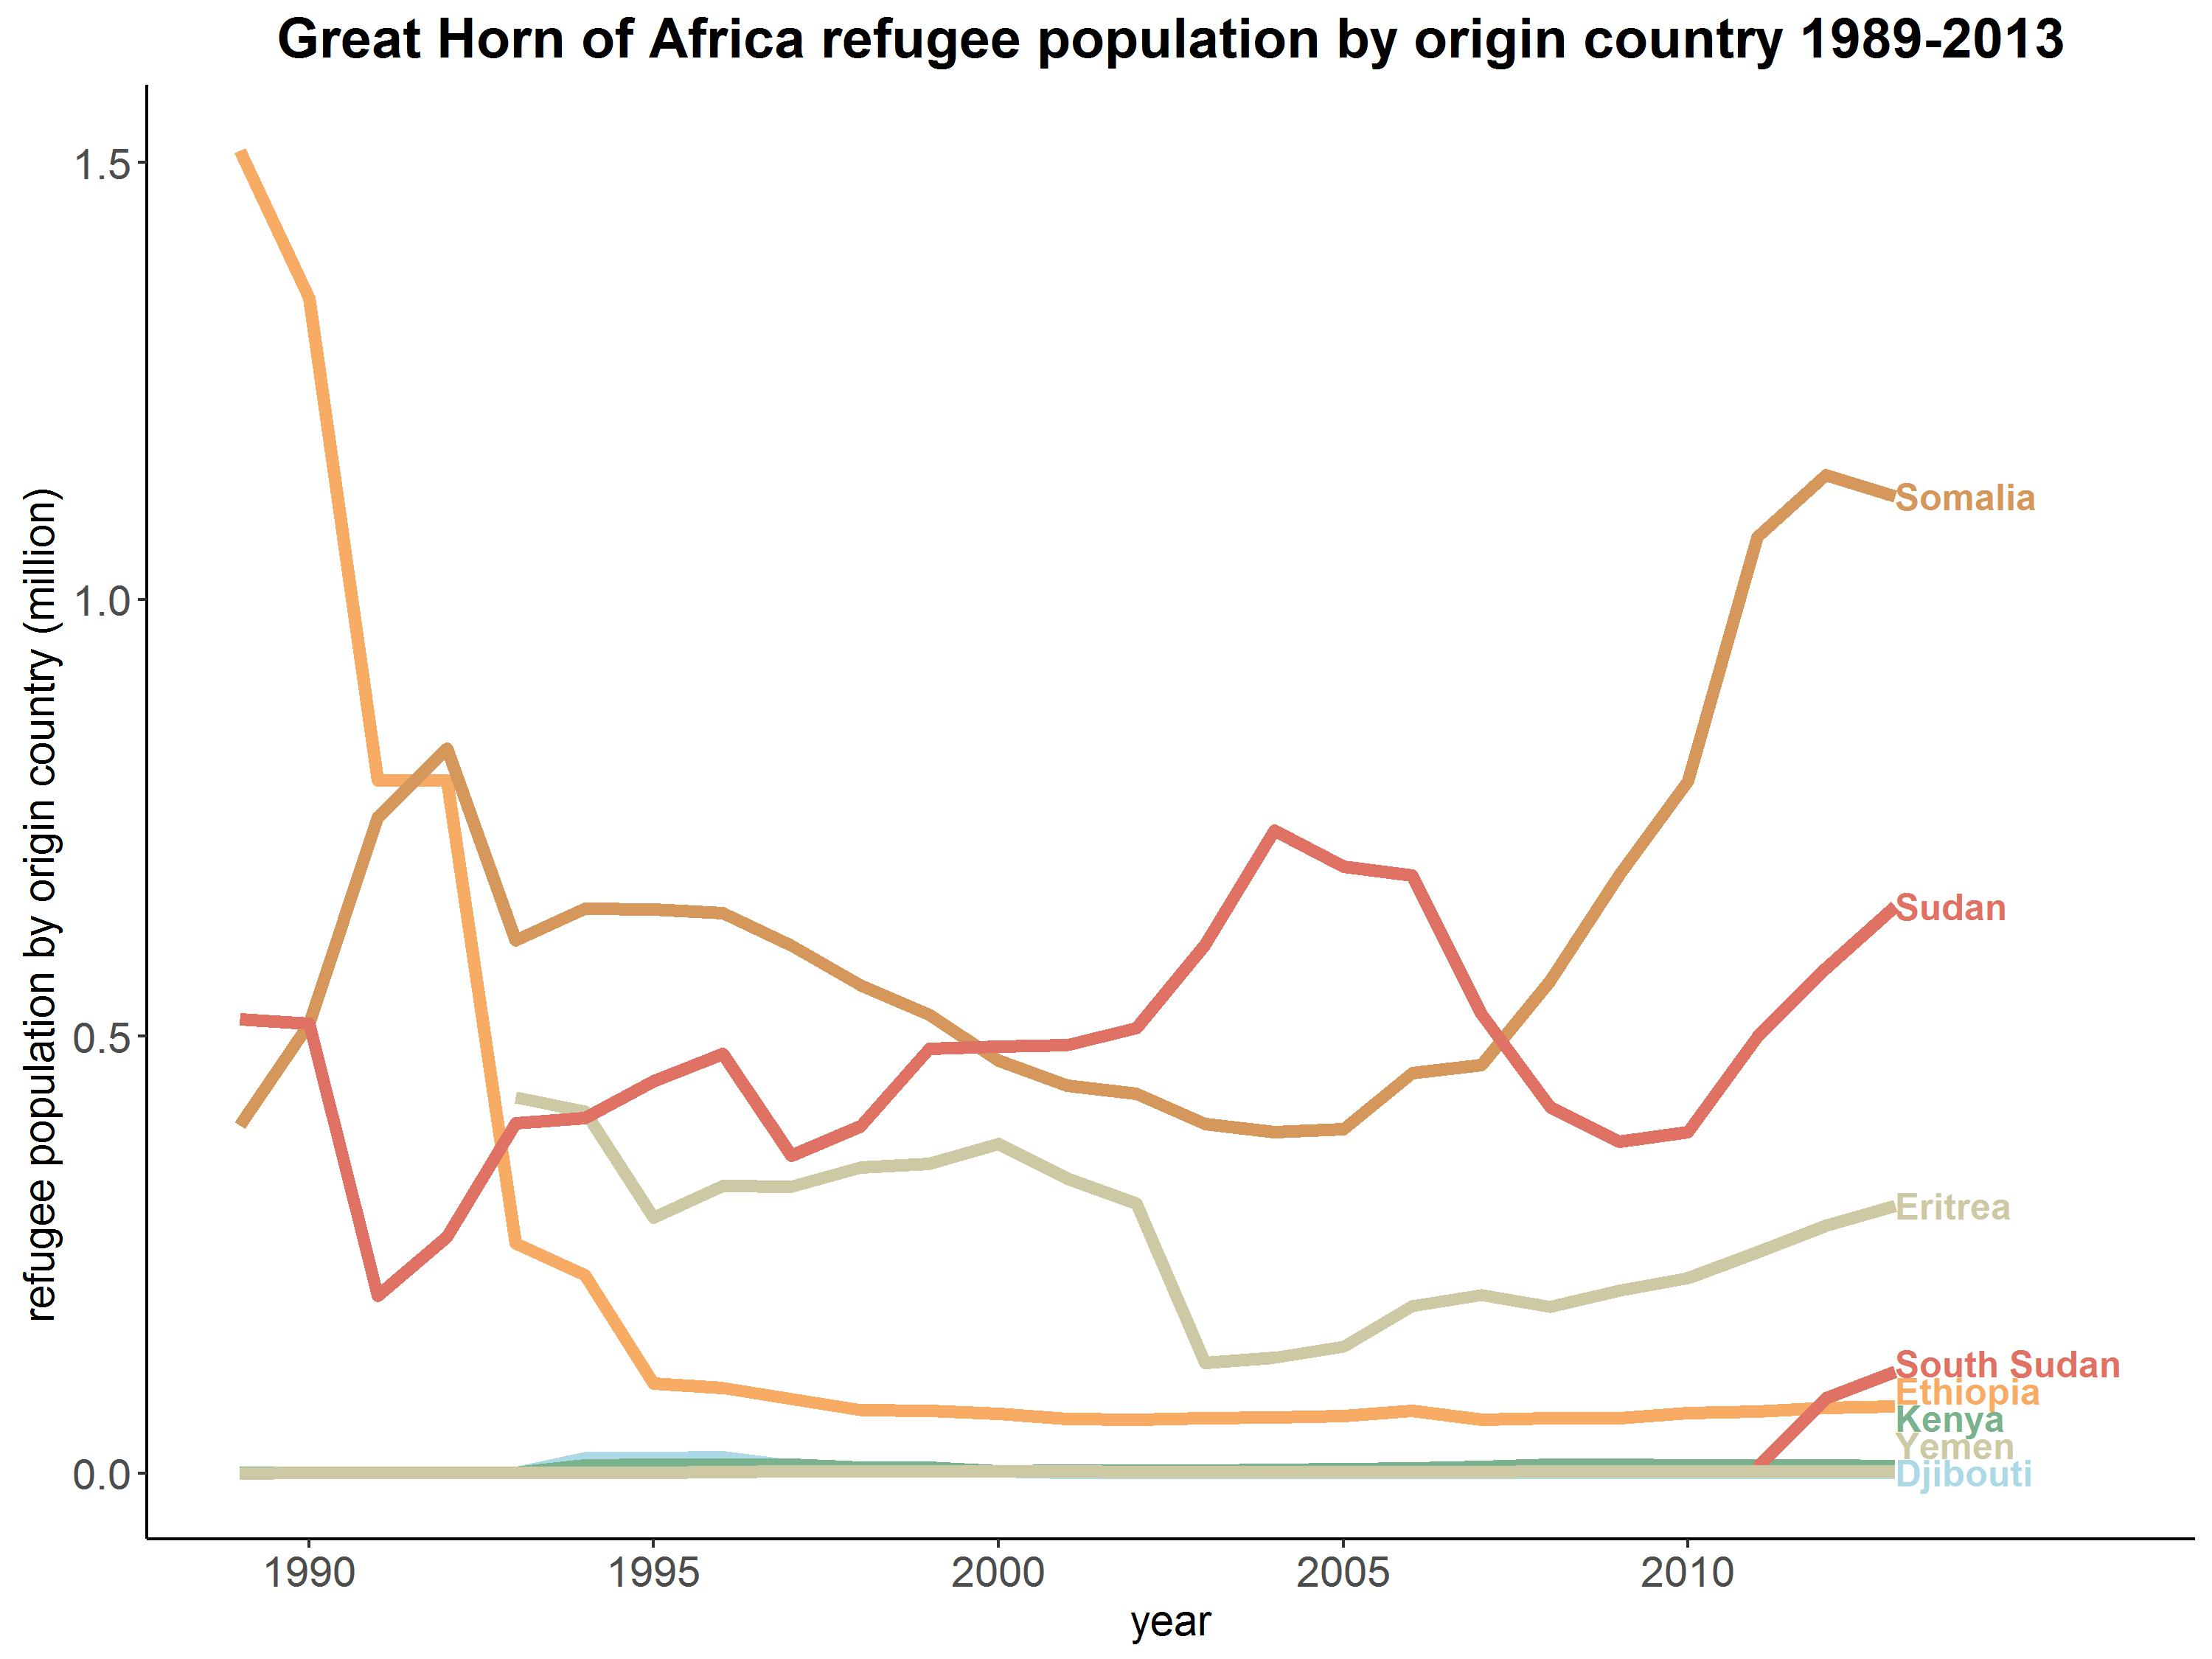 The Ethiopian Refugee Population Has Sharply Declined Until 1995 And Then Remained Stable The Eritrean Refugee Population Remained More Or Less On The Same